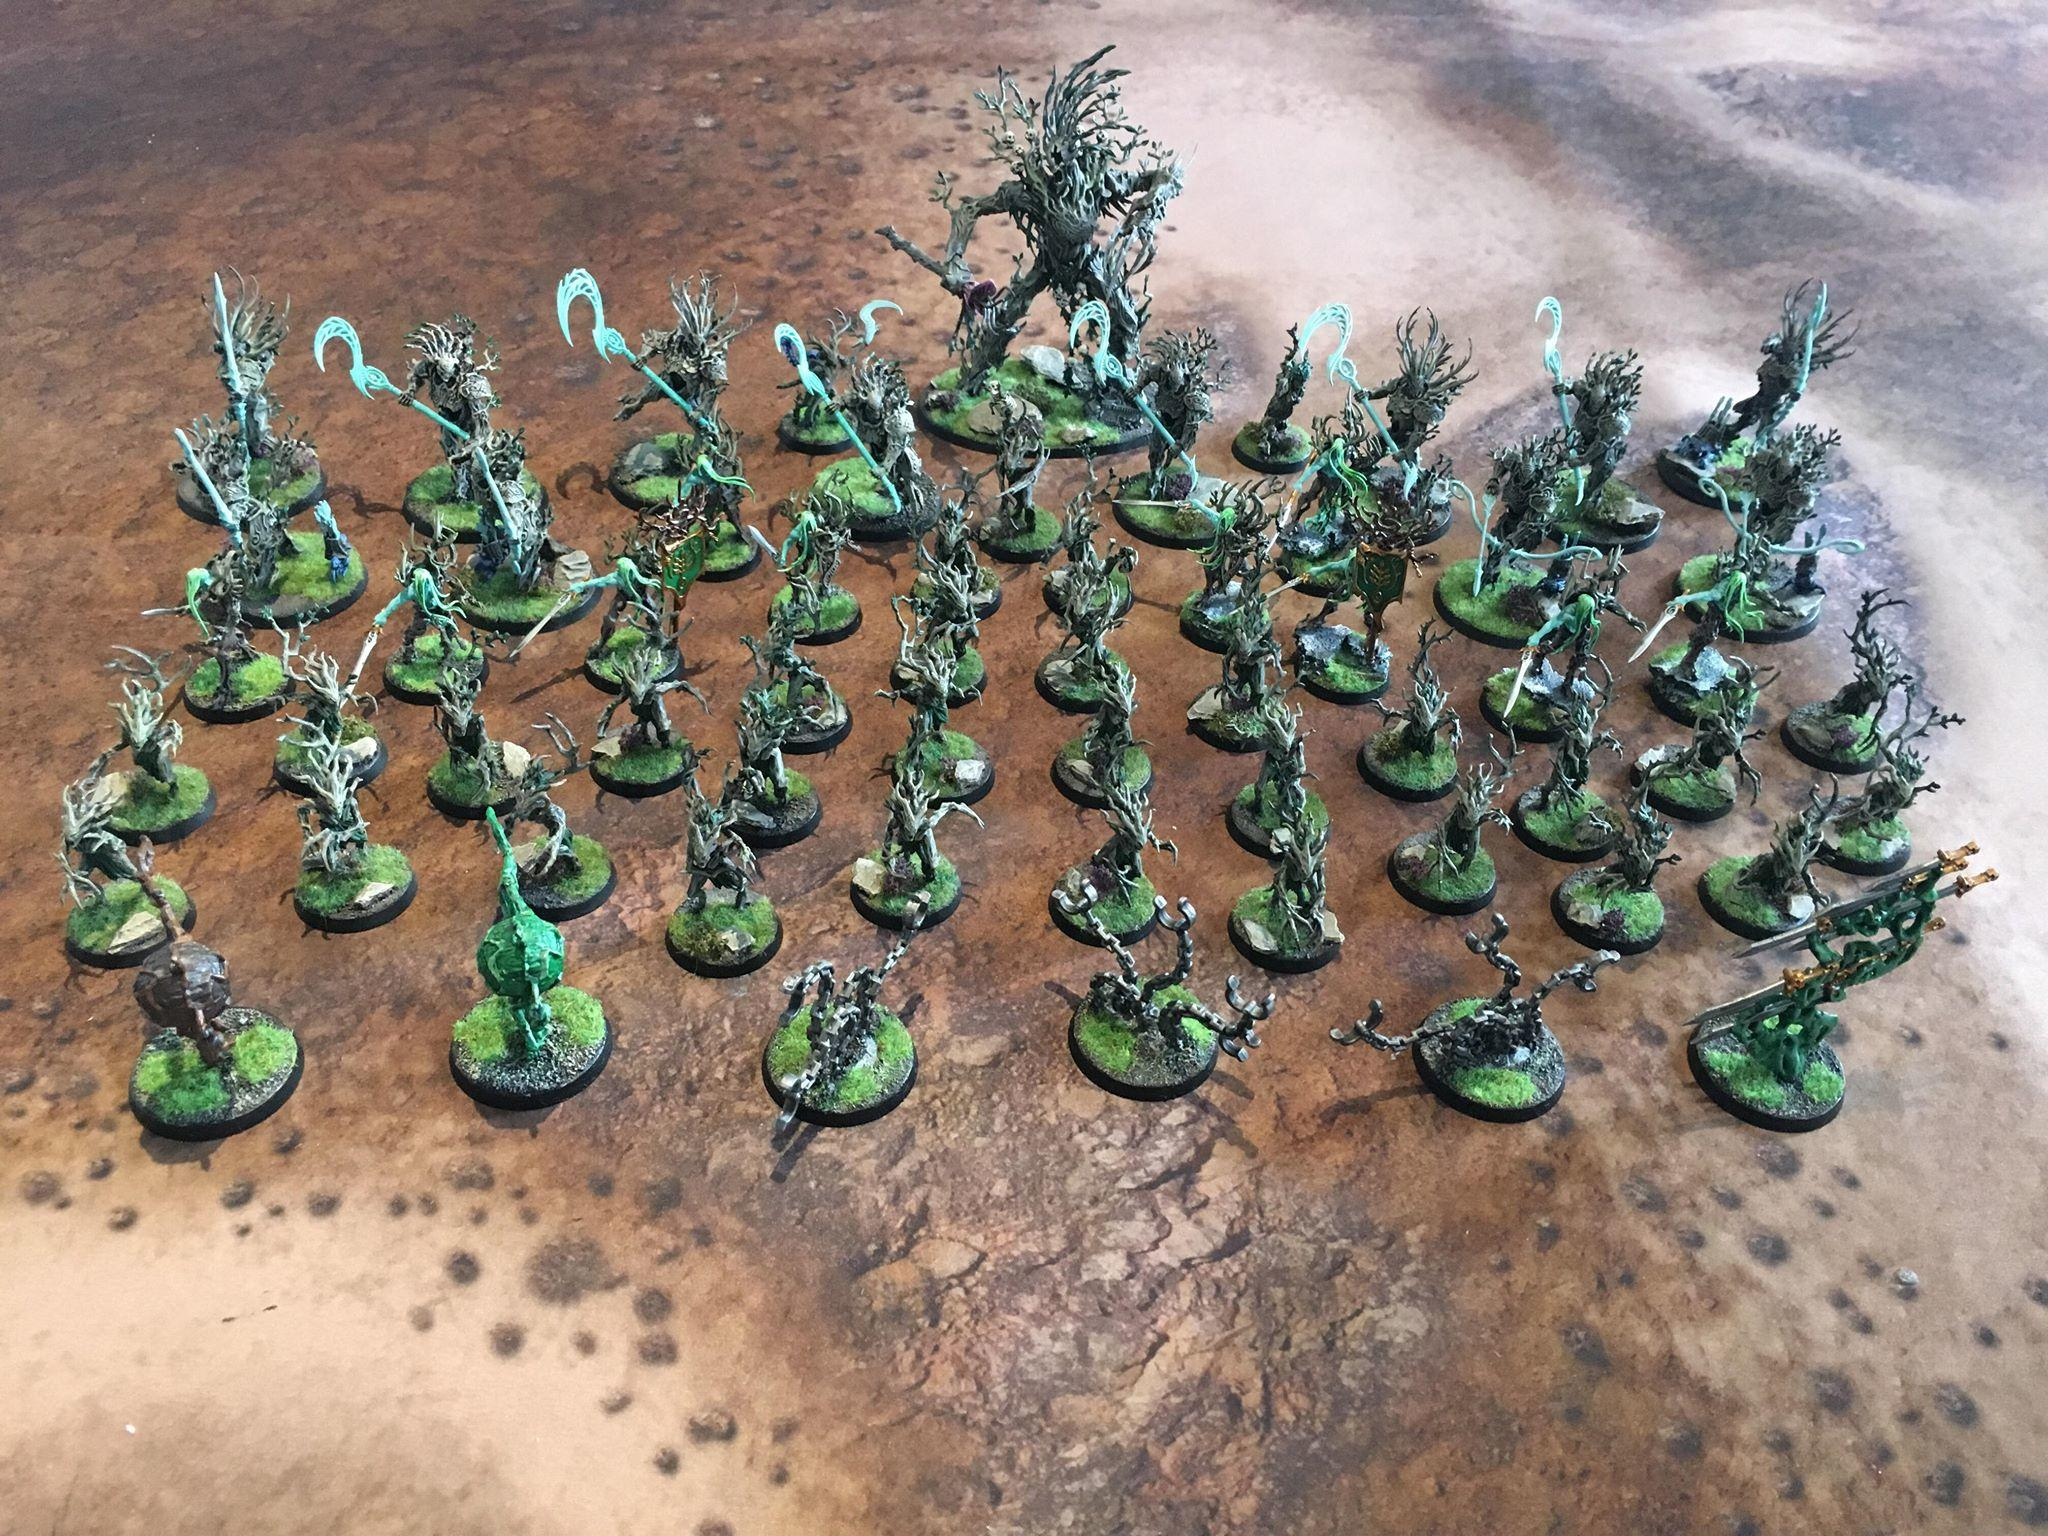 The Gnarlroot Wargrove marches to war!